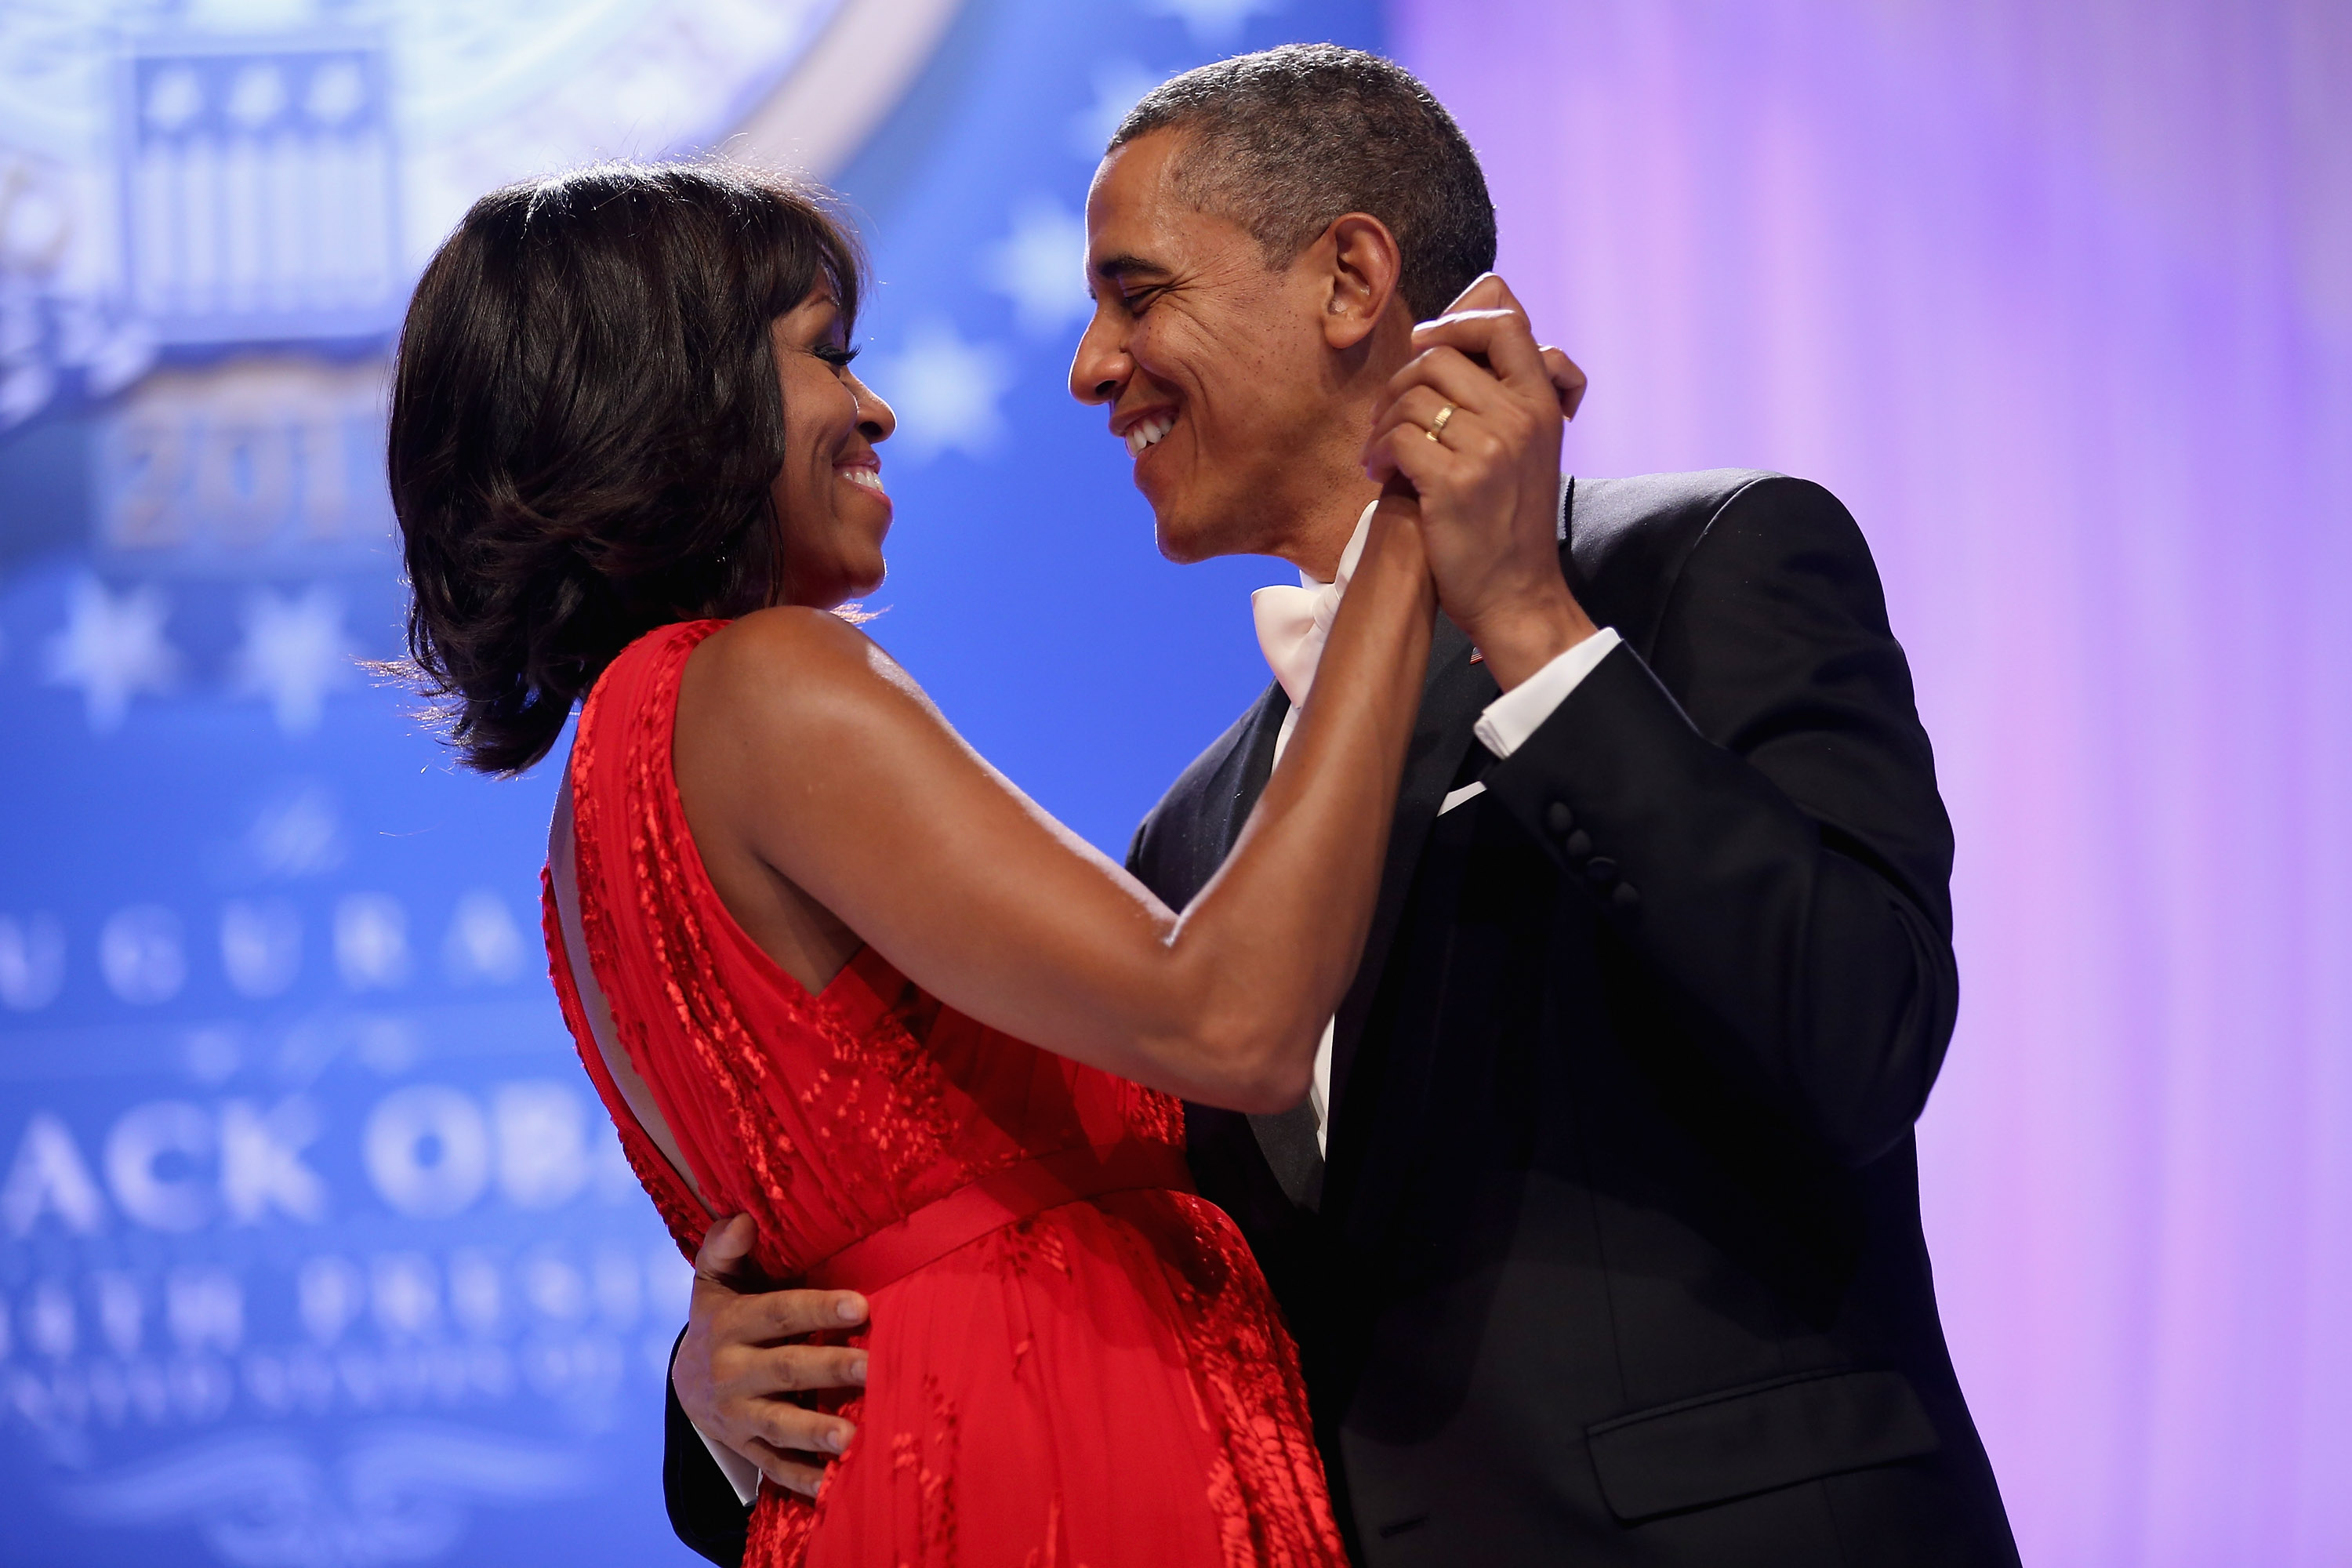 U.S. President Barack Obama and First Lady Michelle Obama dance together during the Comander-in-Chief's Inaugural Ball at the Walter Washington Convention Center January 21, 2013, in Washington, DC. (Getty Images)